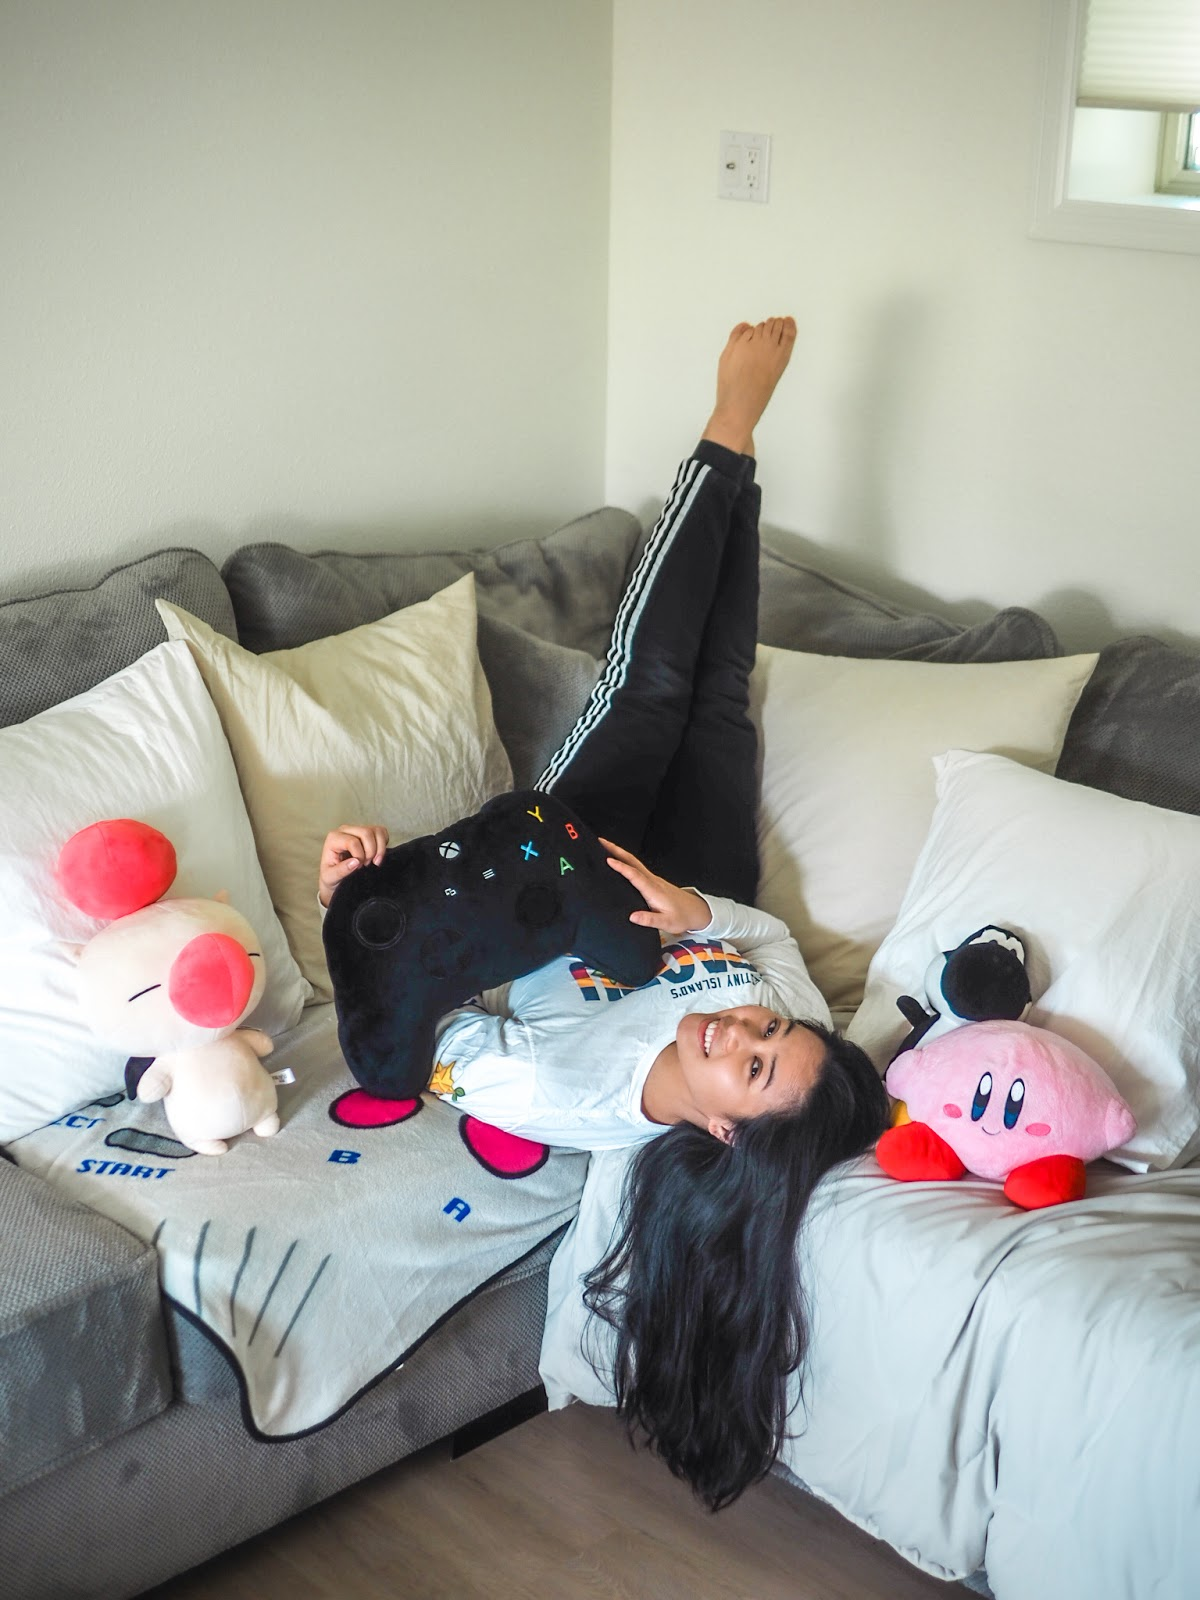 Kirstie chan seattle blogger upside down on couch with gaming pillows xbox moogle kirby